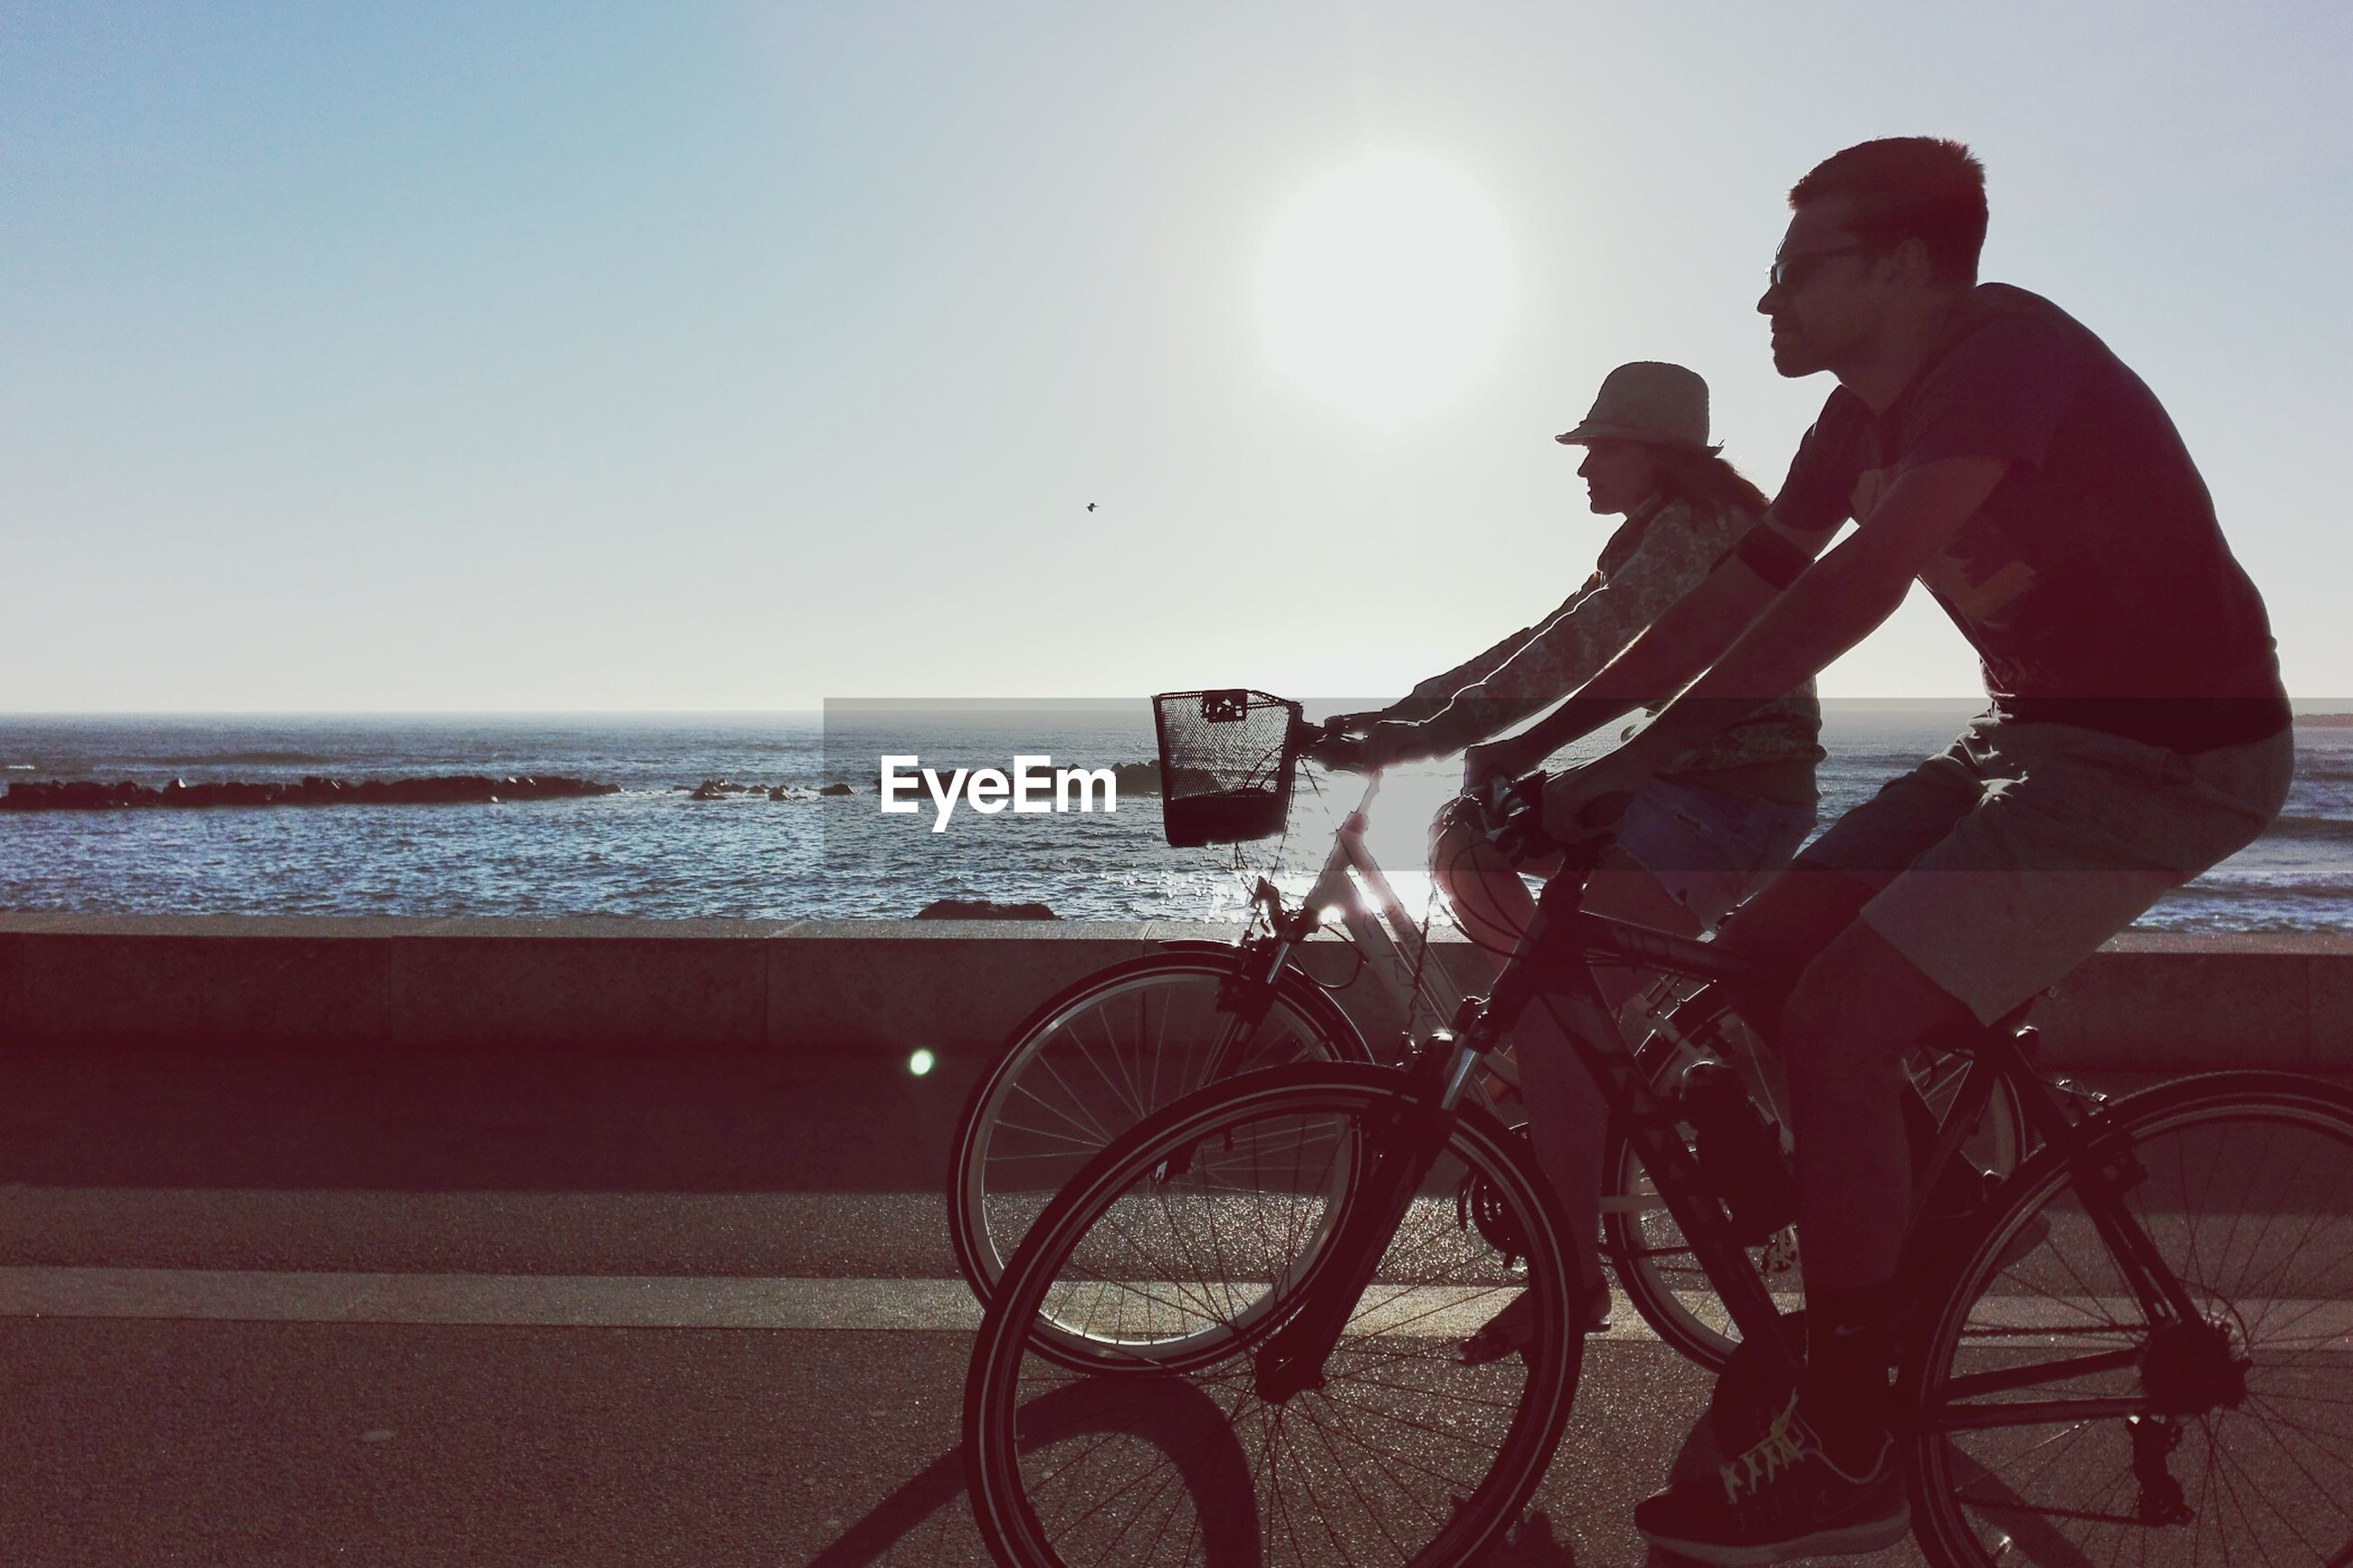 Man and woman cycling on road by sea against clear sky